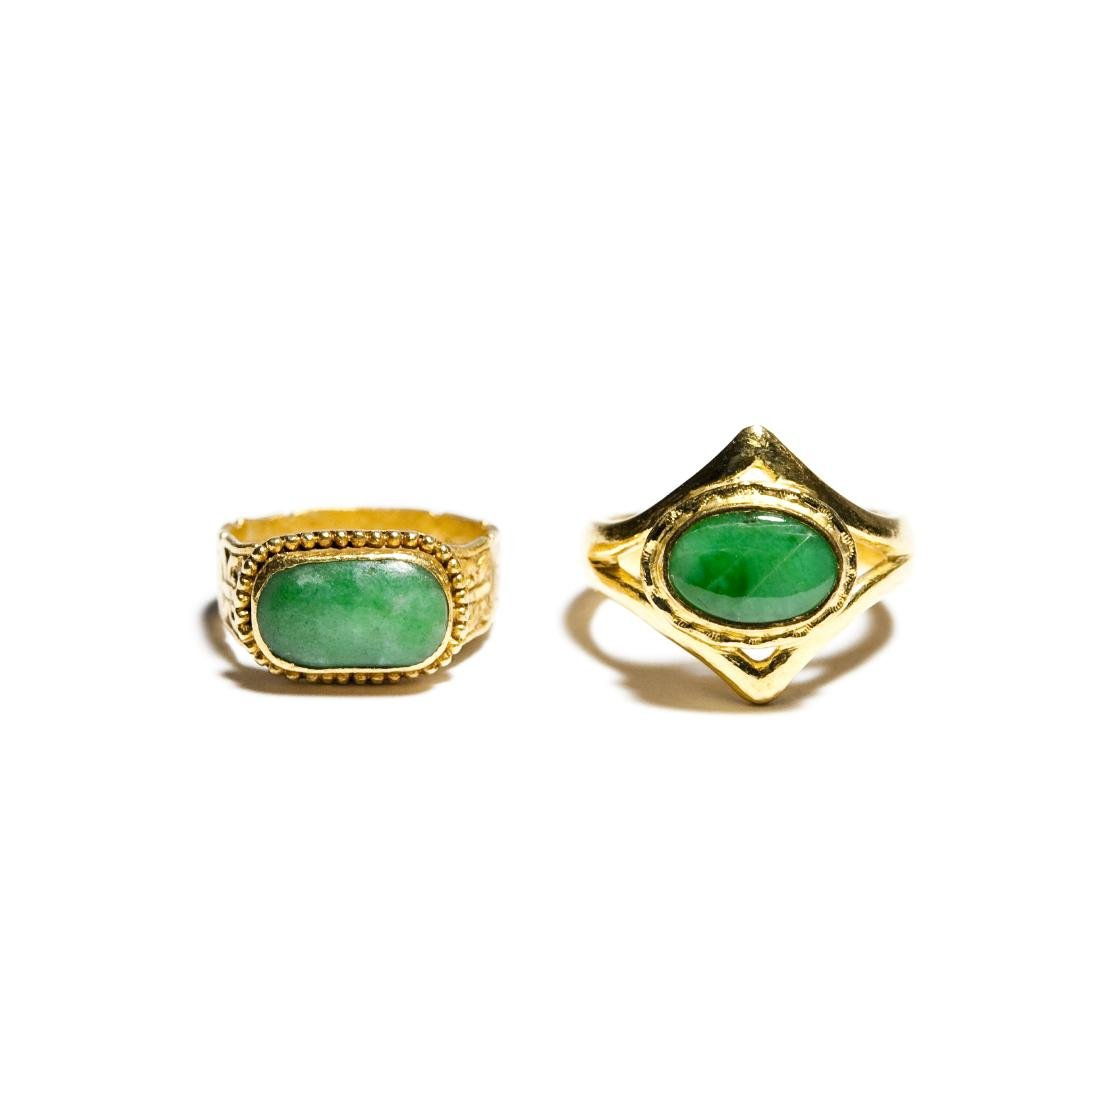 (2) Chinese Gold And Jade Rings.